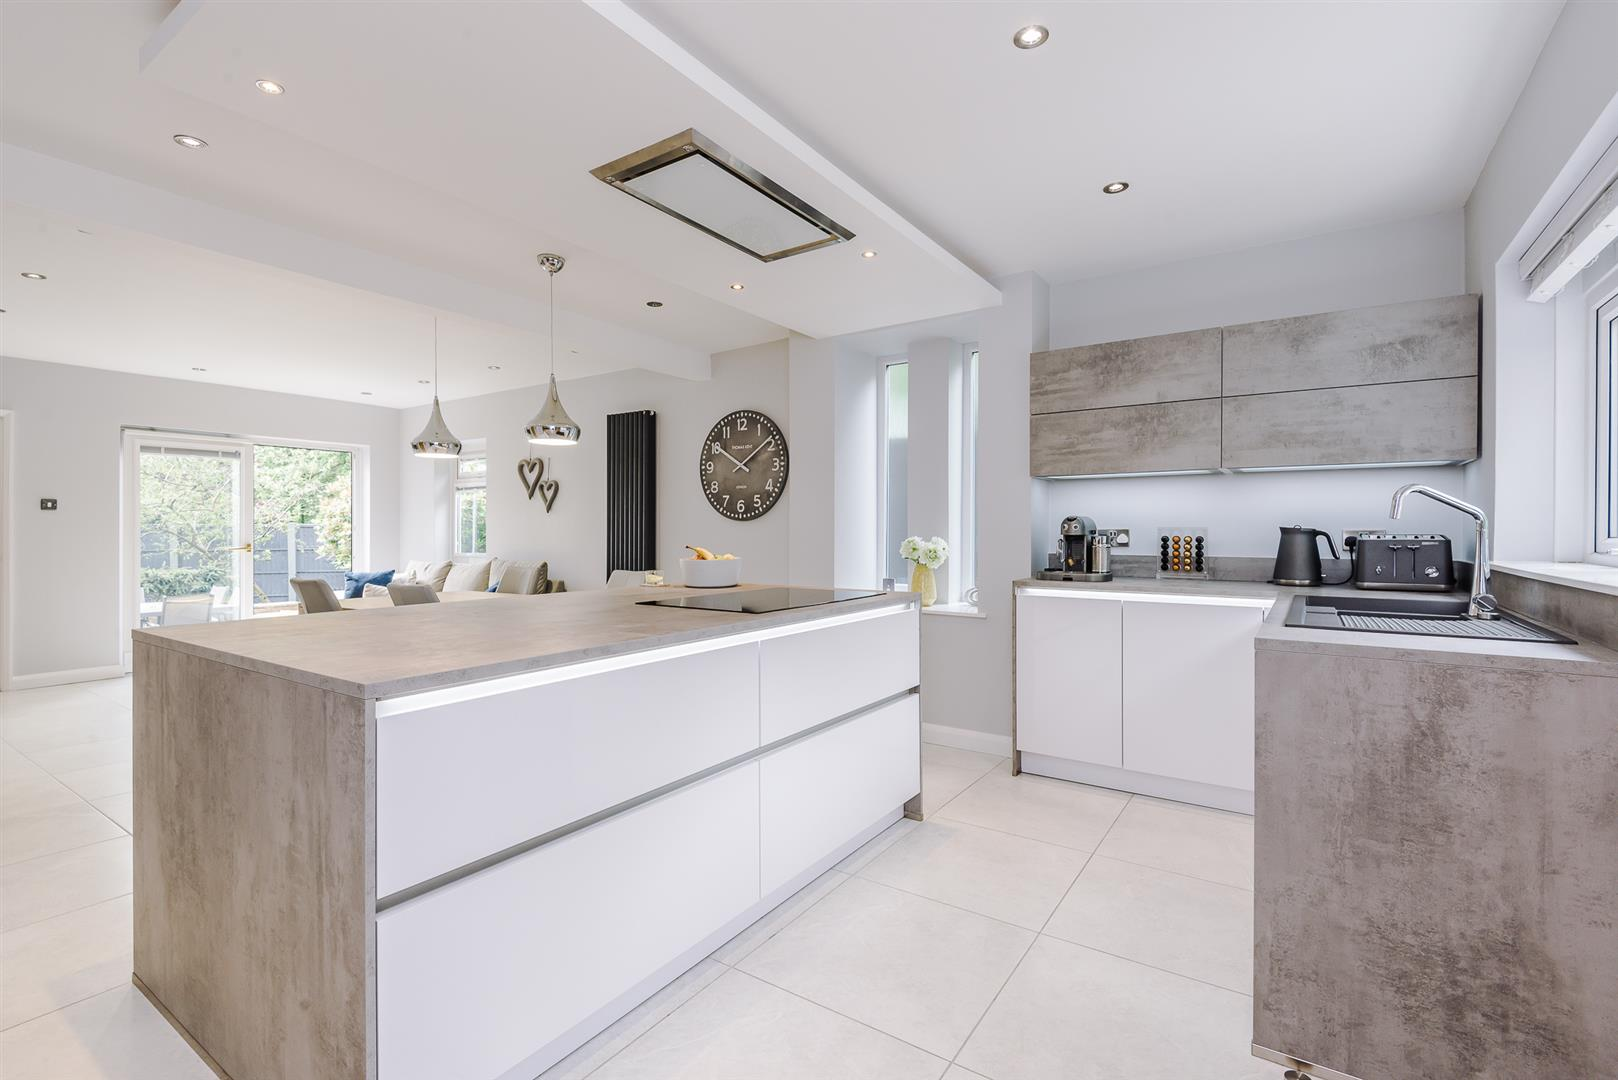 4 bedroom detached house For Sale in Bolton - DSC_6402.jpg.